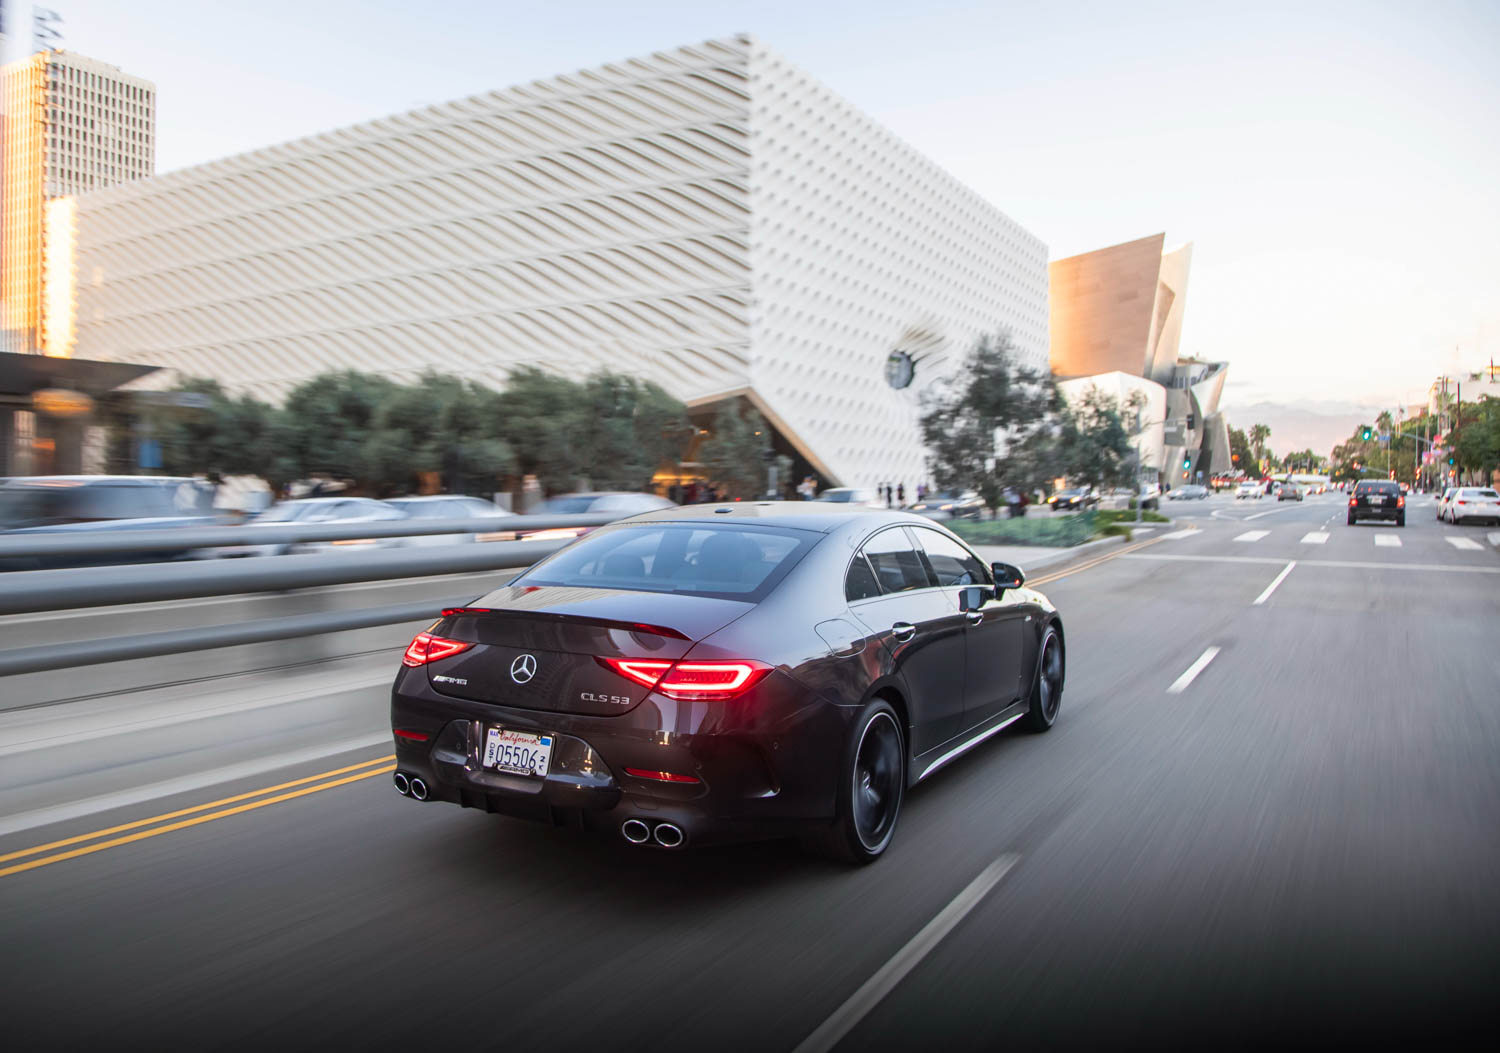 2019 Mercedes-AMG CLS53 driving rear 3/4